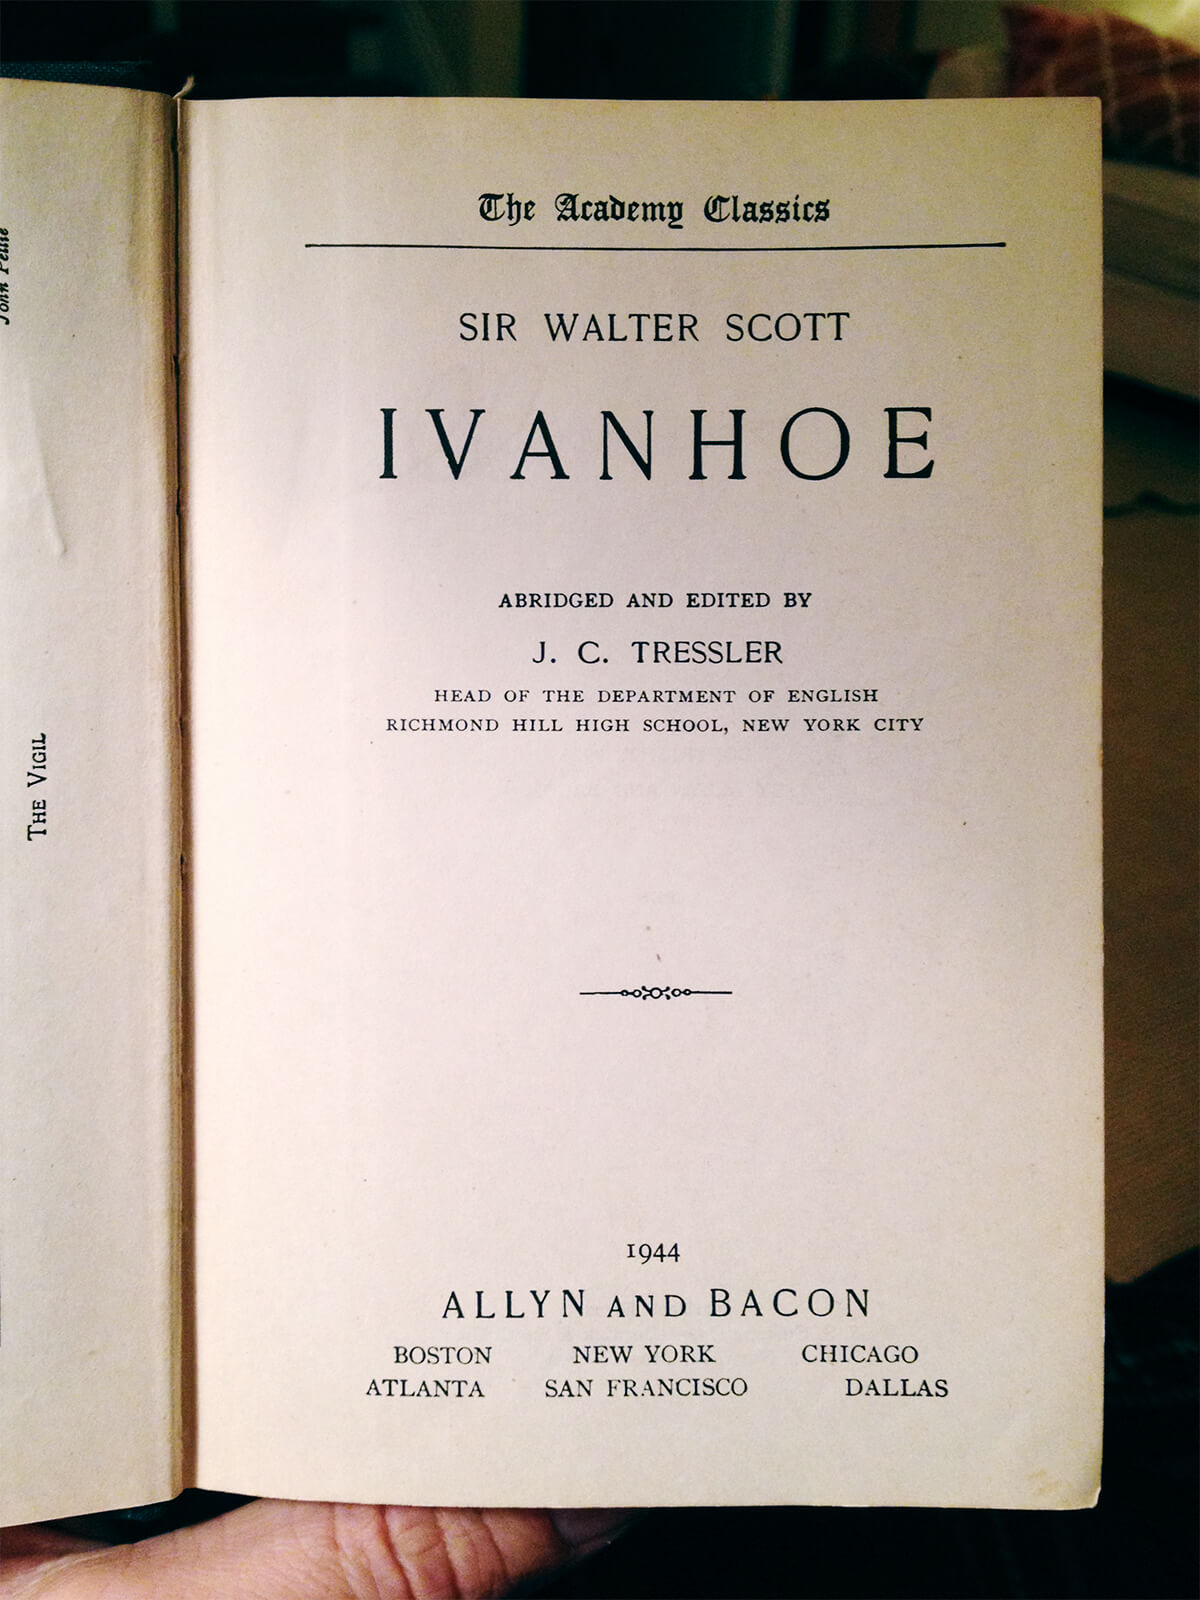 Ivanhoe: title page